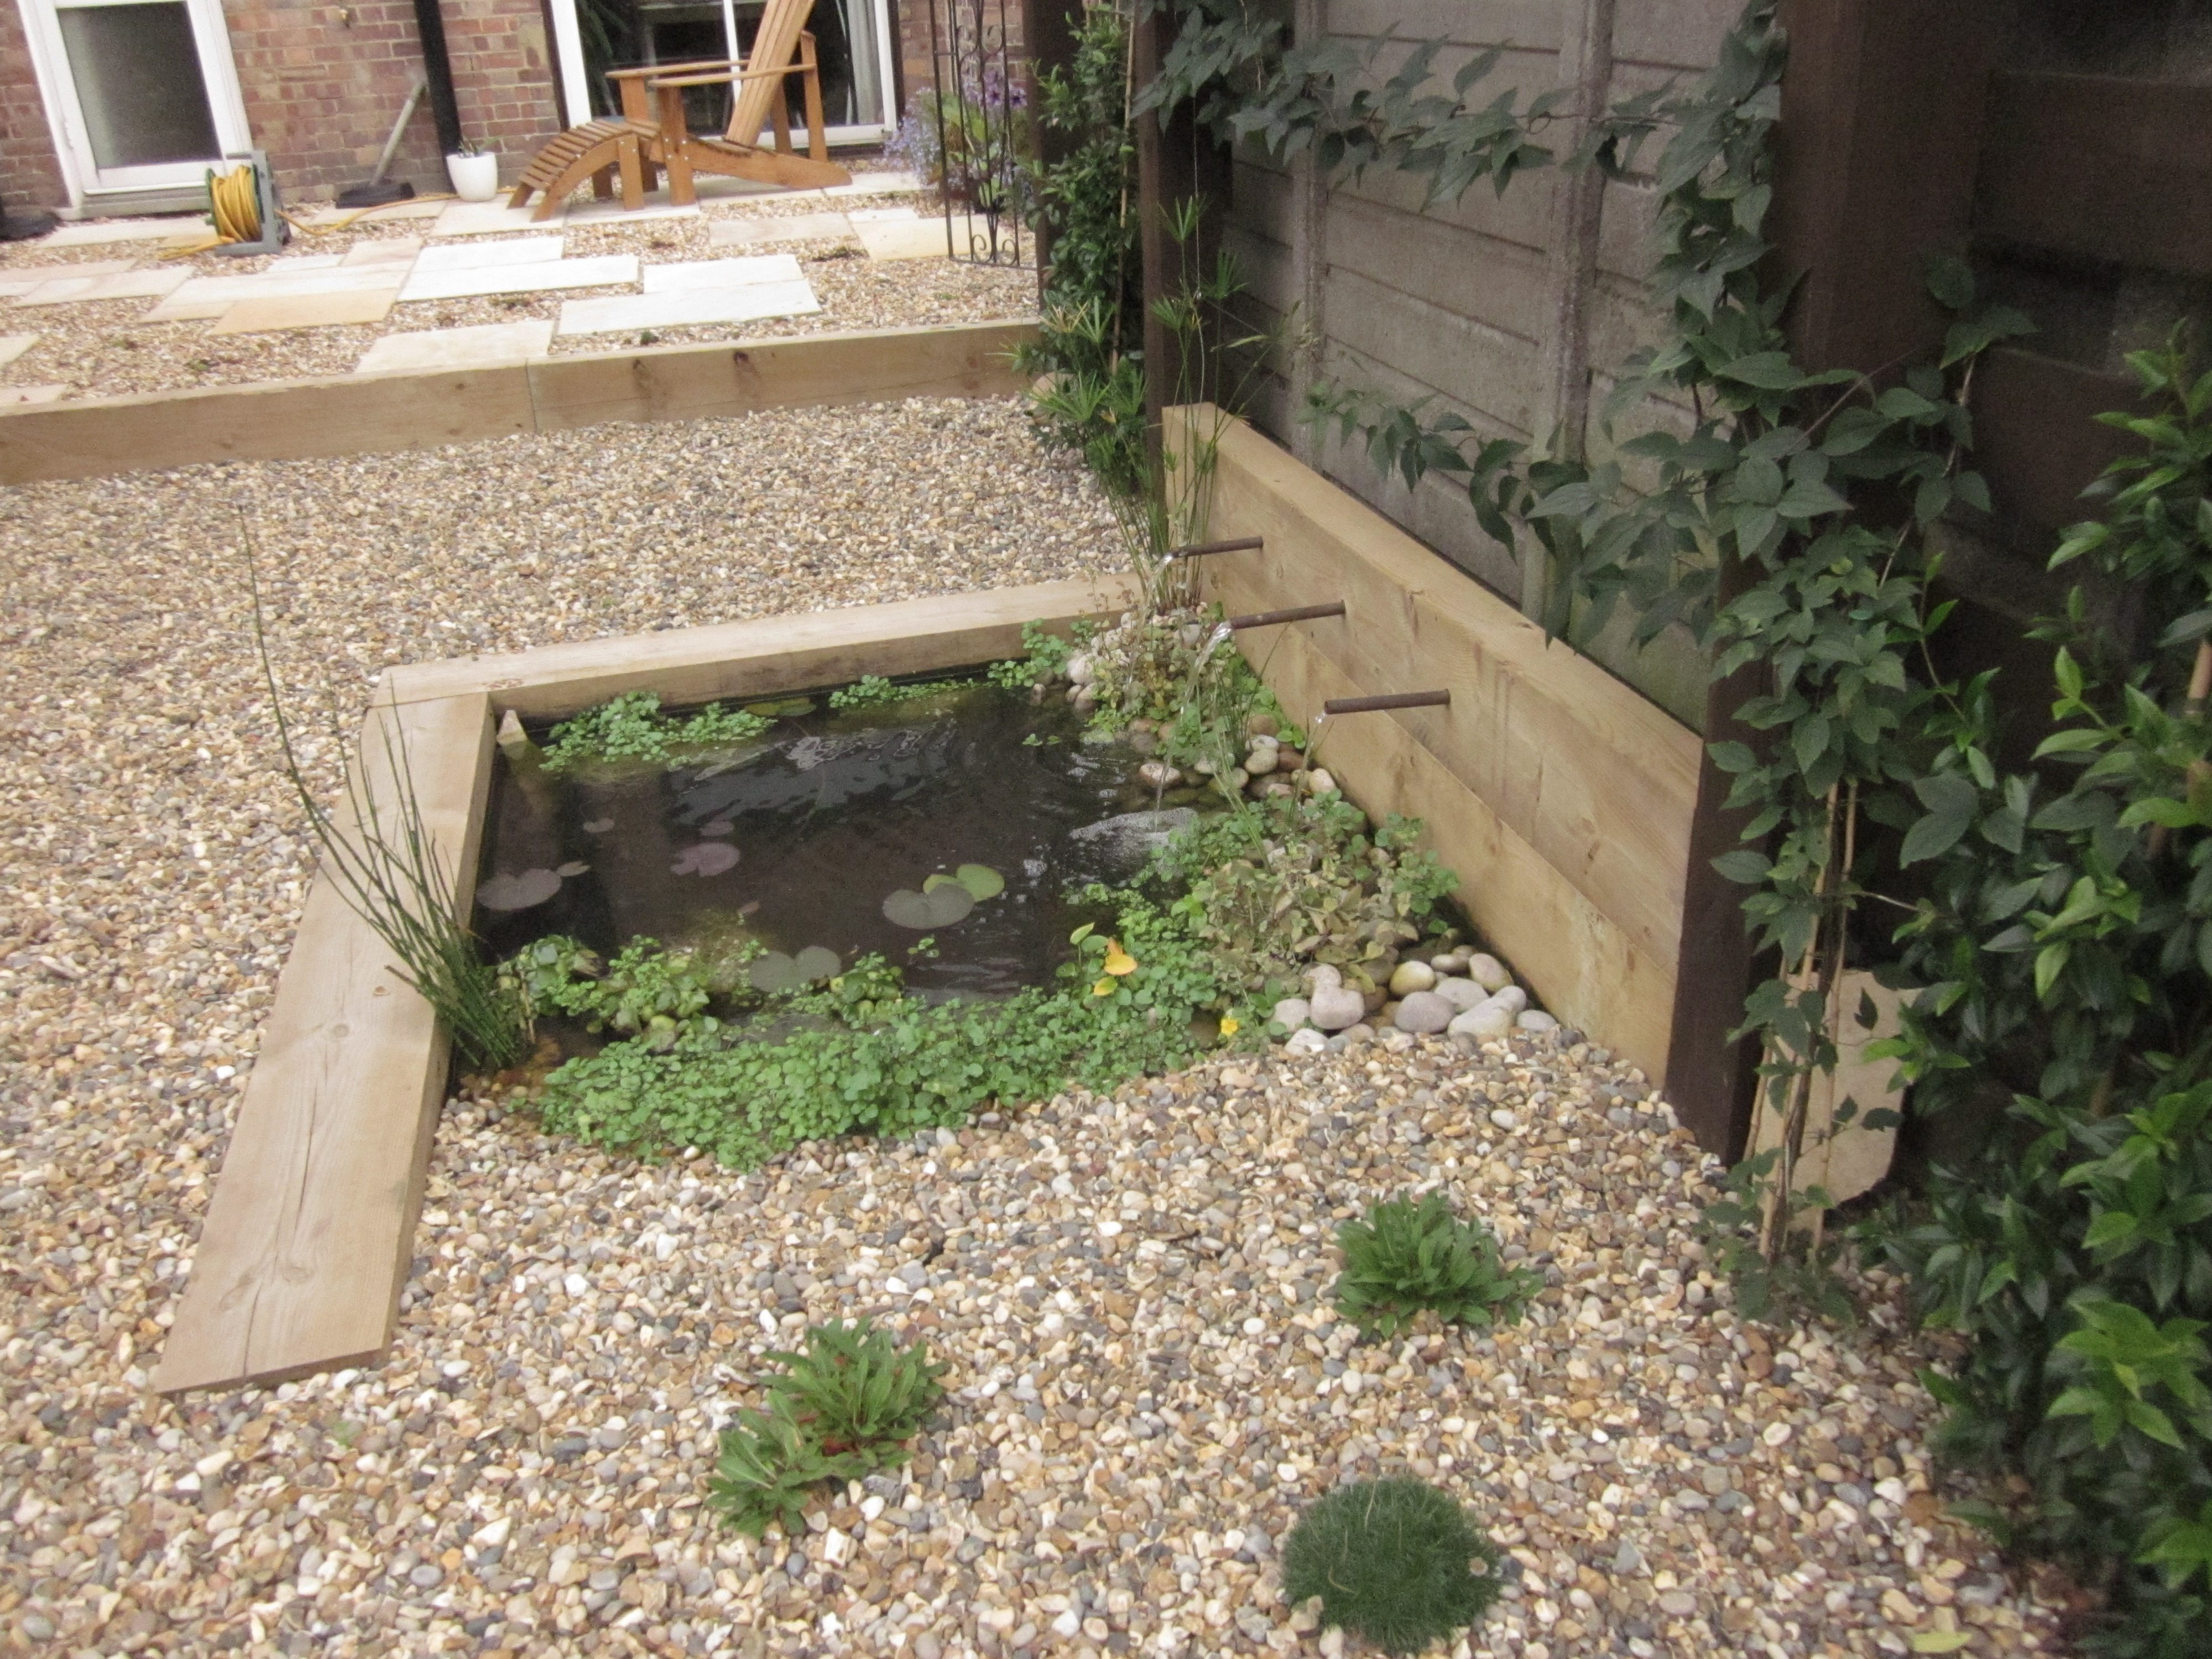 Garden design top tips something to pond er earth for Simply ponds and gardens